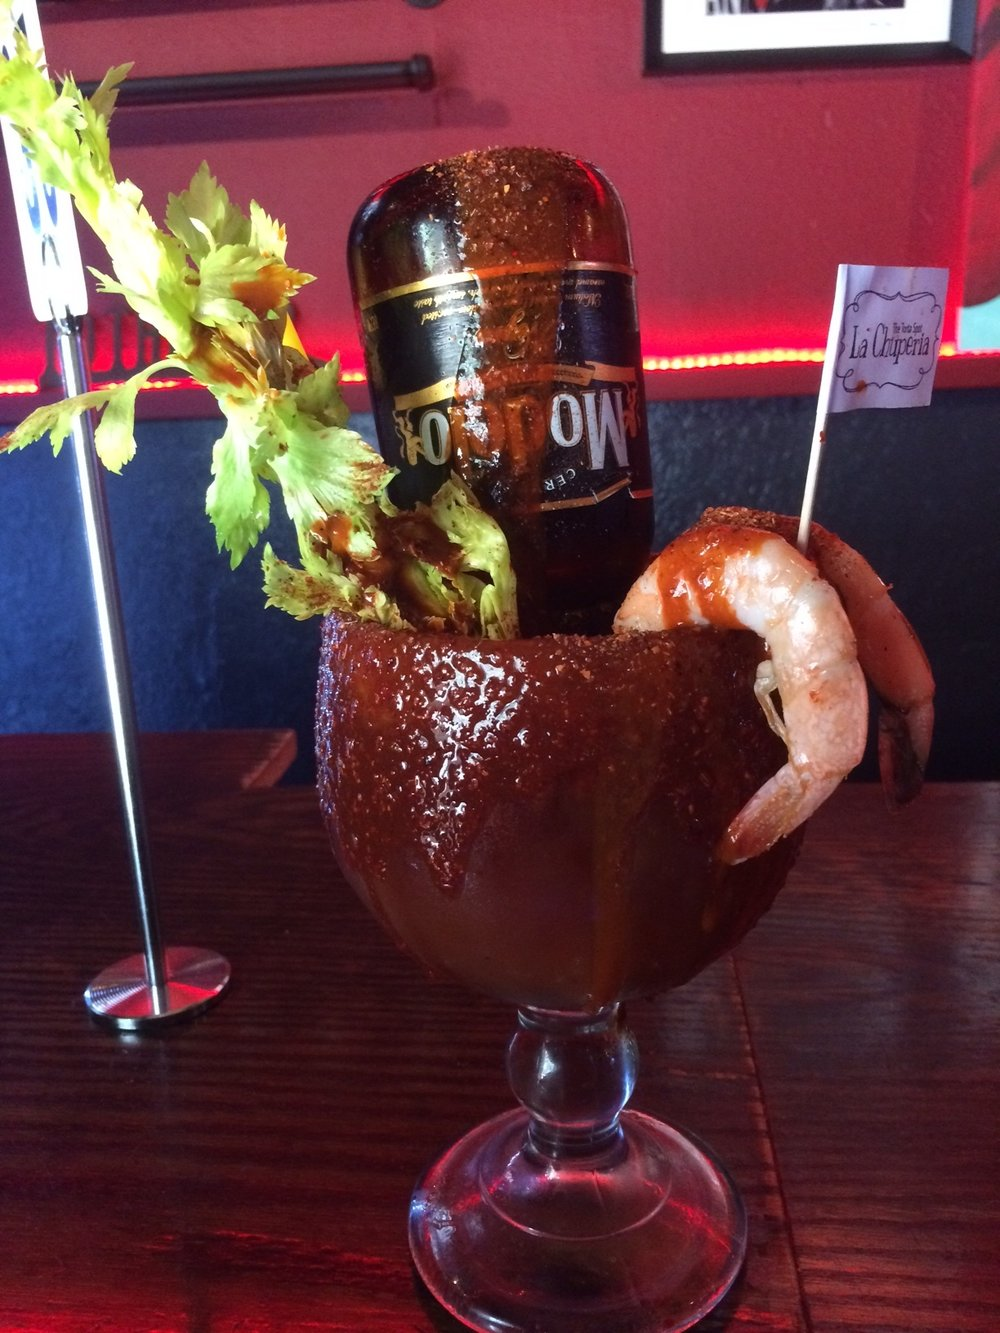 The micheladas at La Chuperia are enormous and powerful – one could very well last you an entire quarter of whatever sports game you choose. Photo by Dan Johnson.